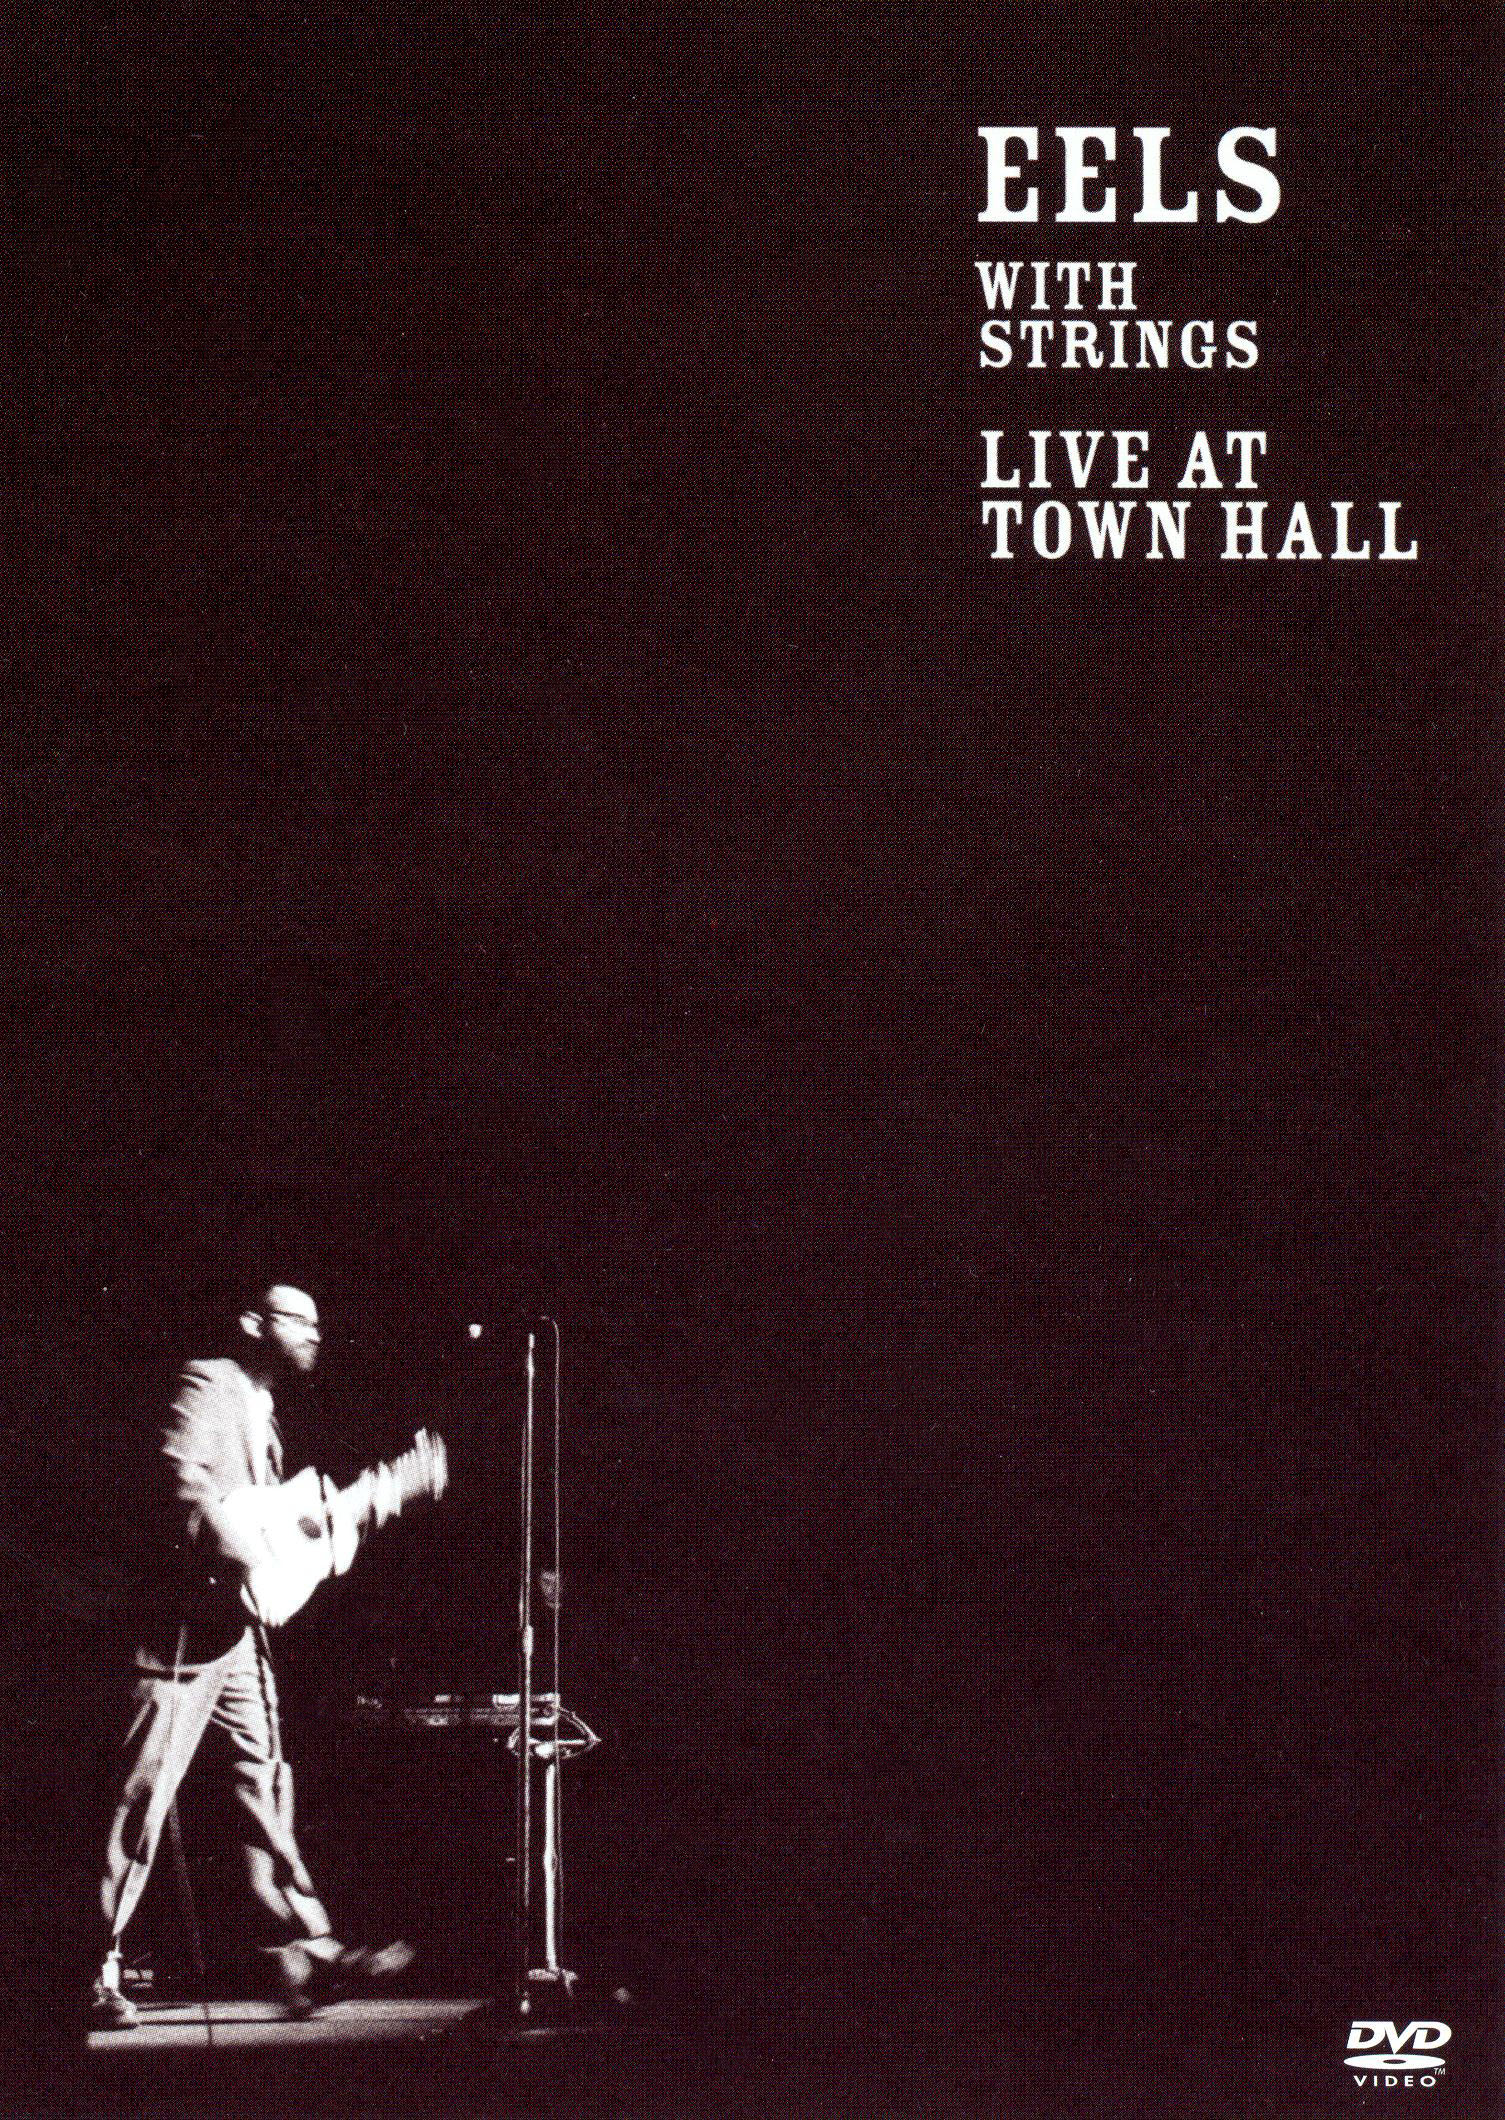 The Eels: With Strings - Live at Town Hall